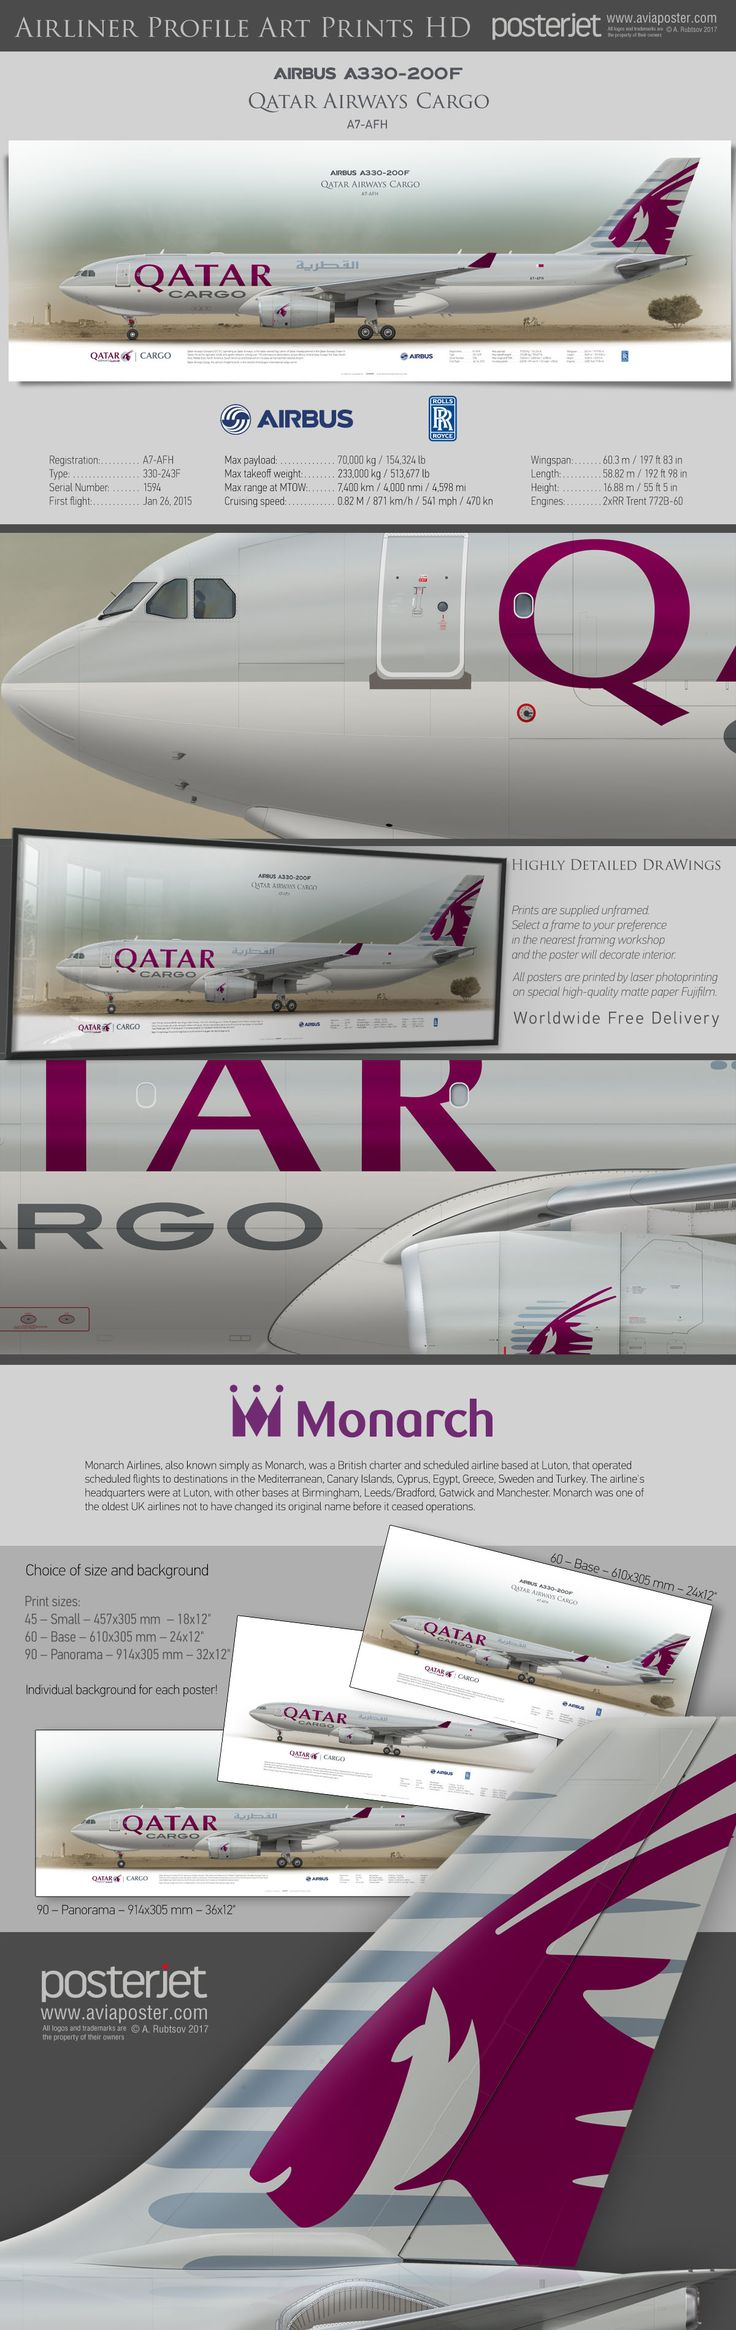 Airbus A330-200F Qatar Airways Cargo A7-AFH | https://www.aviaposter.com/casiameast | #airliners #aviation #jetliner #airplane #pilot #aviationlovers #avgeek #jet #airport #pilotlife #cabincrew #airbuslovers #airbuspilot #airbuscrew #airbus330